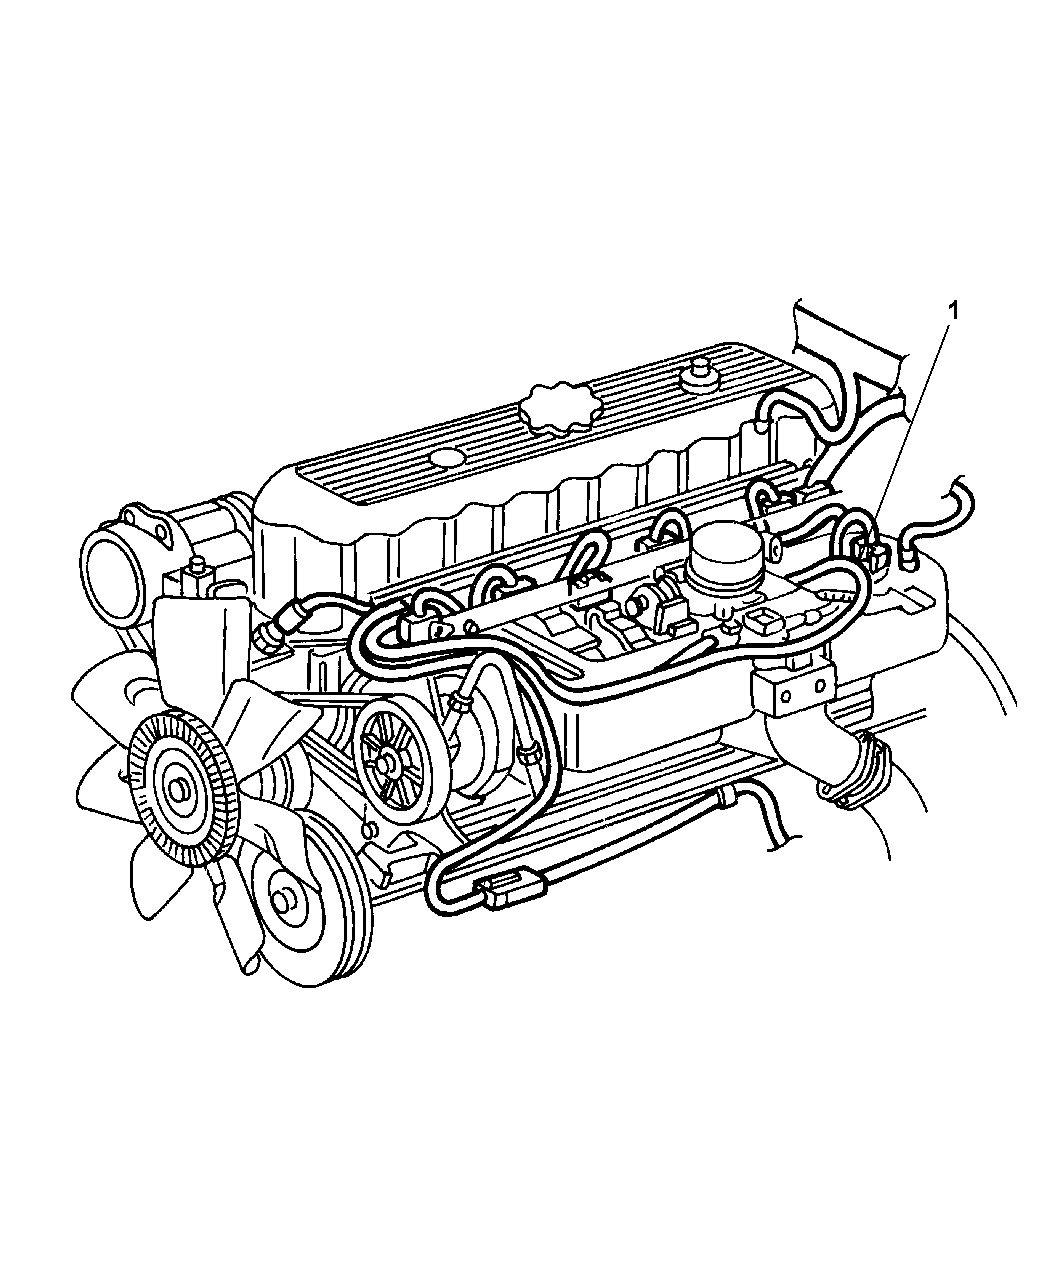 2002 jeep liberty wiring - engine & related parts